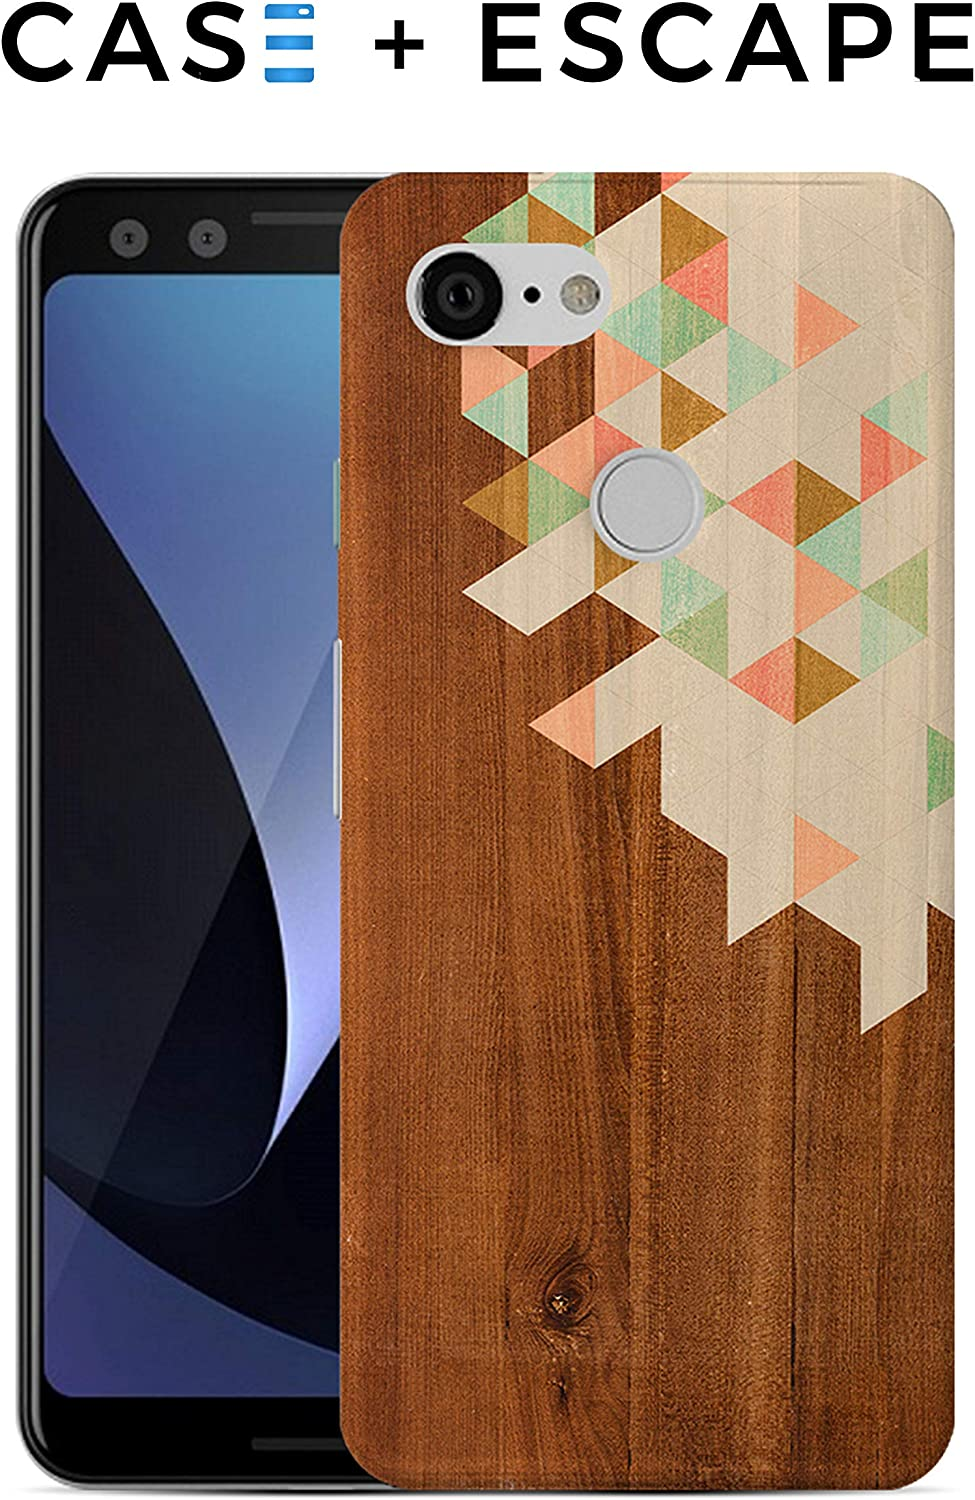 Google Pixel 3a Phone Case - Case Escape - Nature Inspired - Wood Design - Impact Resistant - Matte Shell - Phone Case